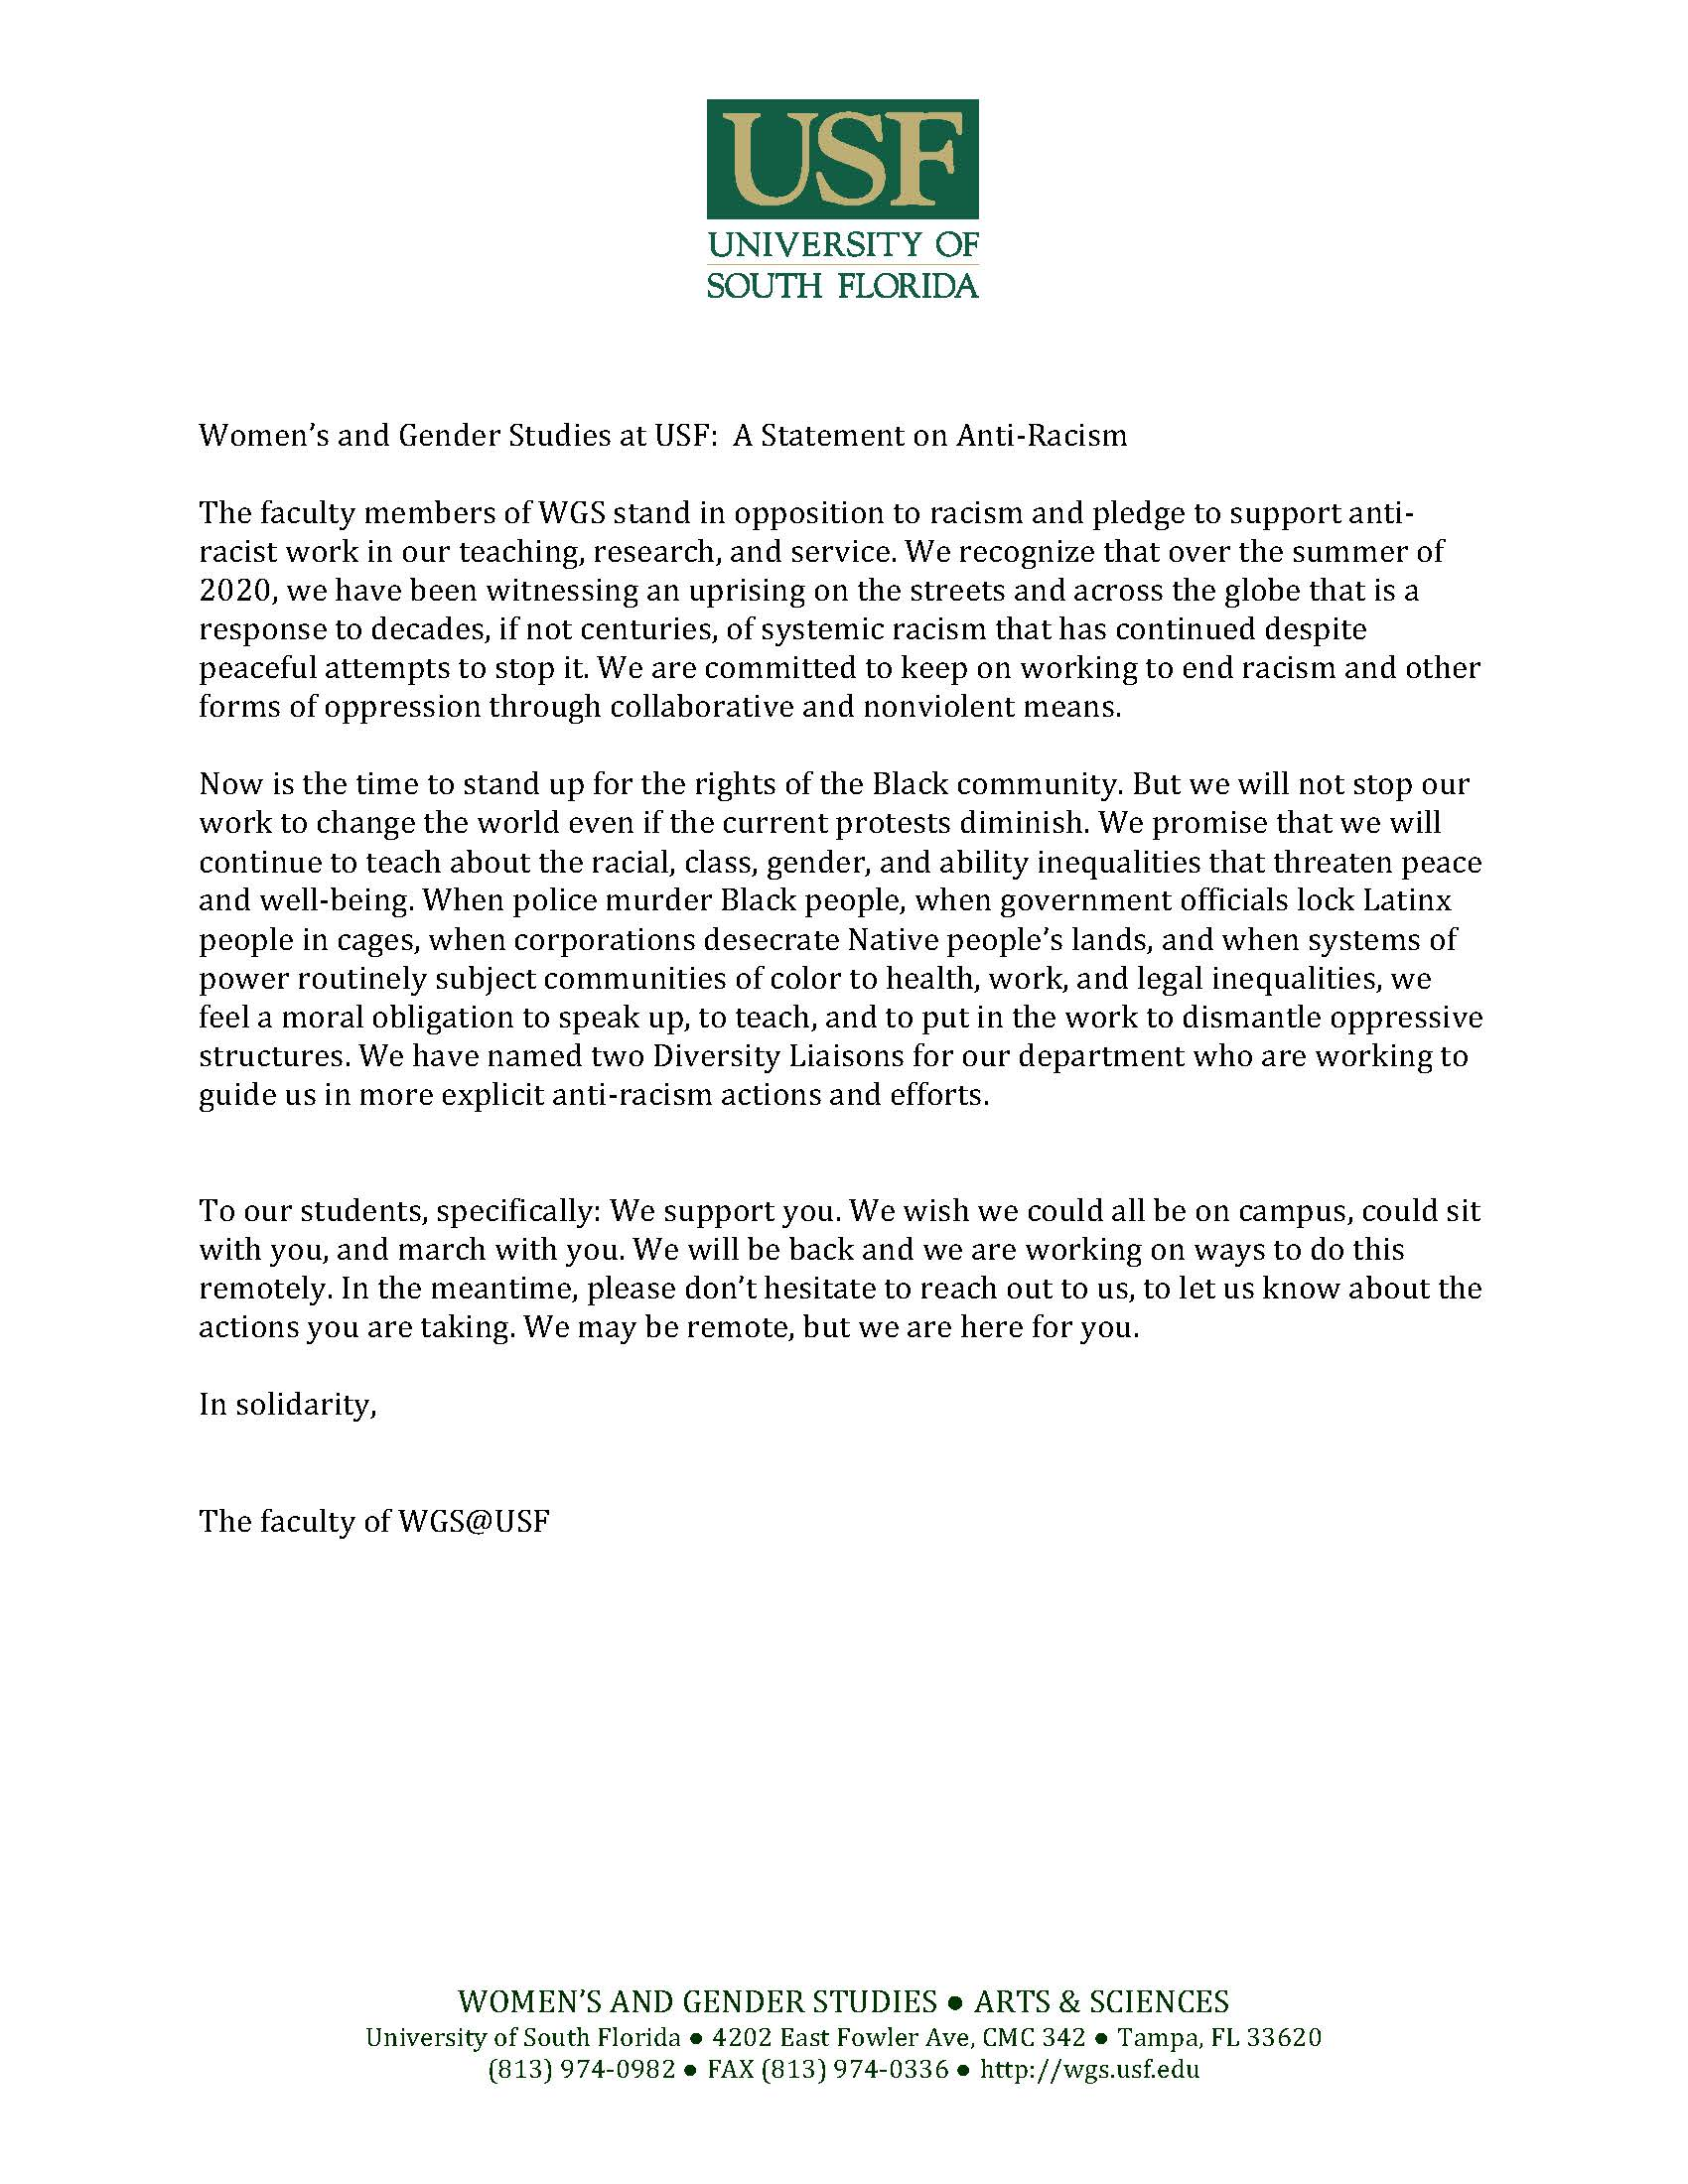 WGS Statement on Anti-Racism